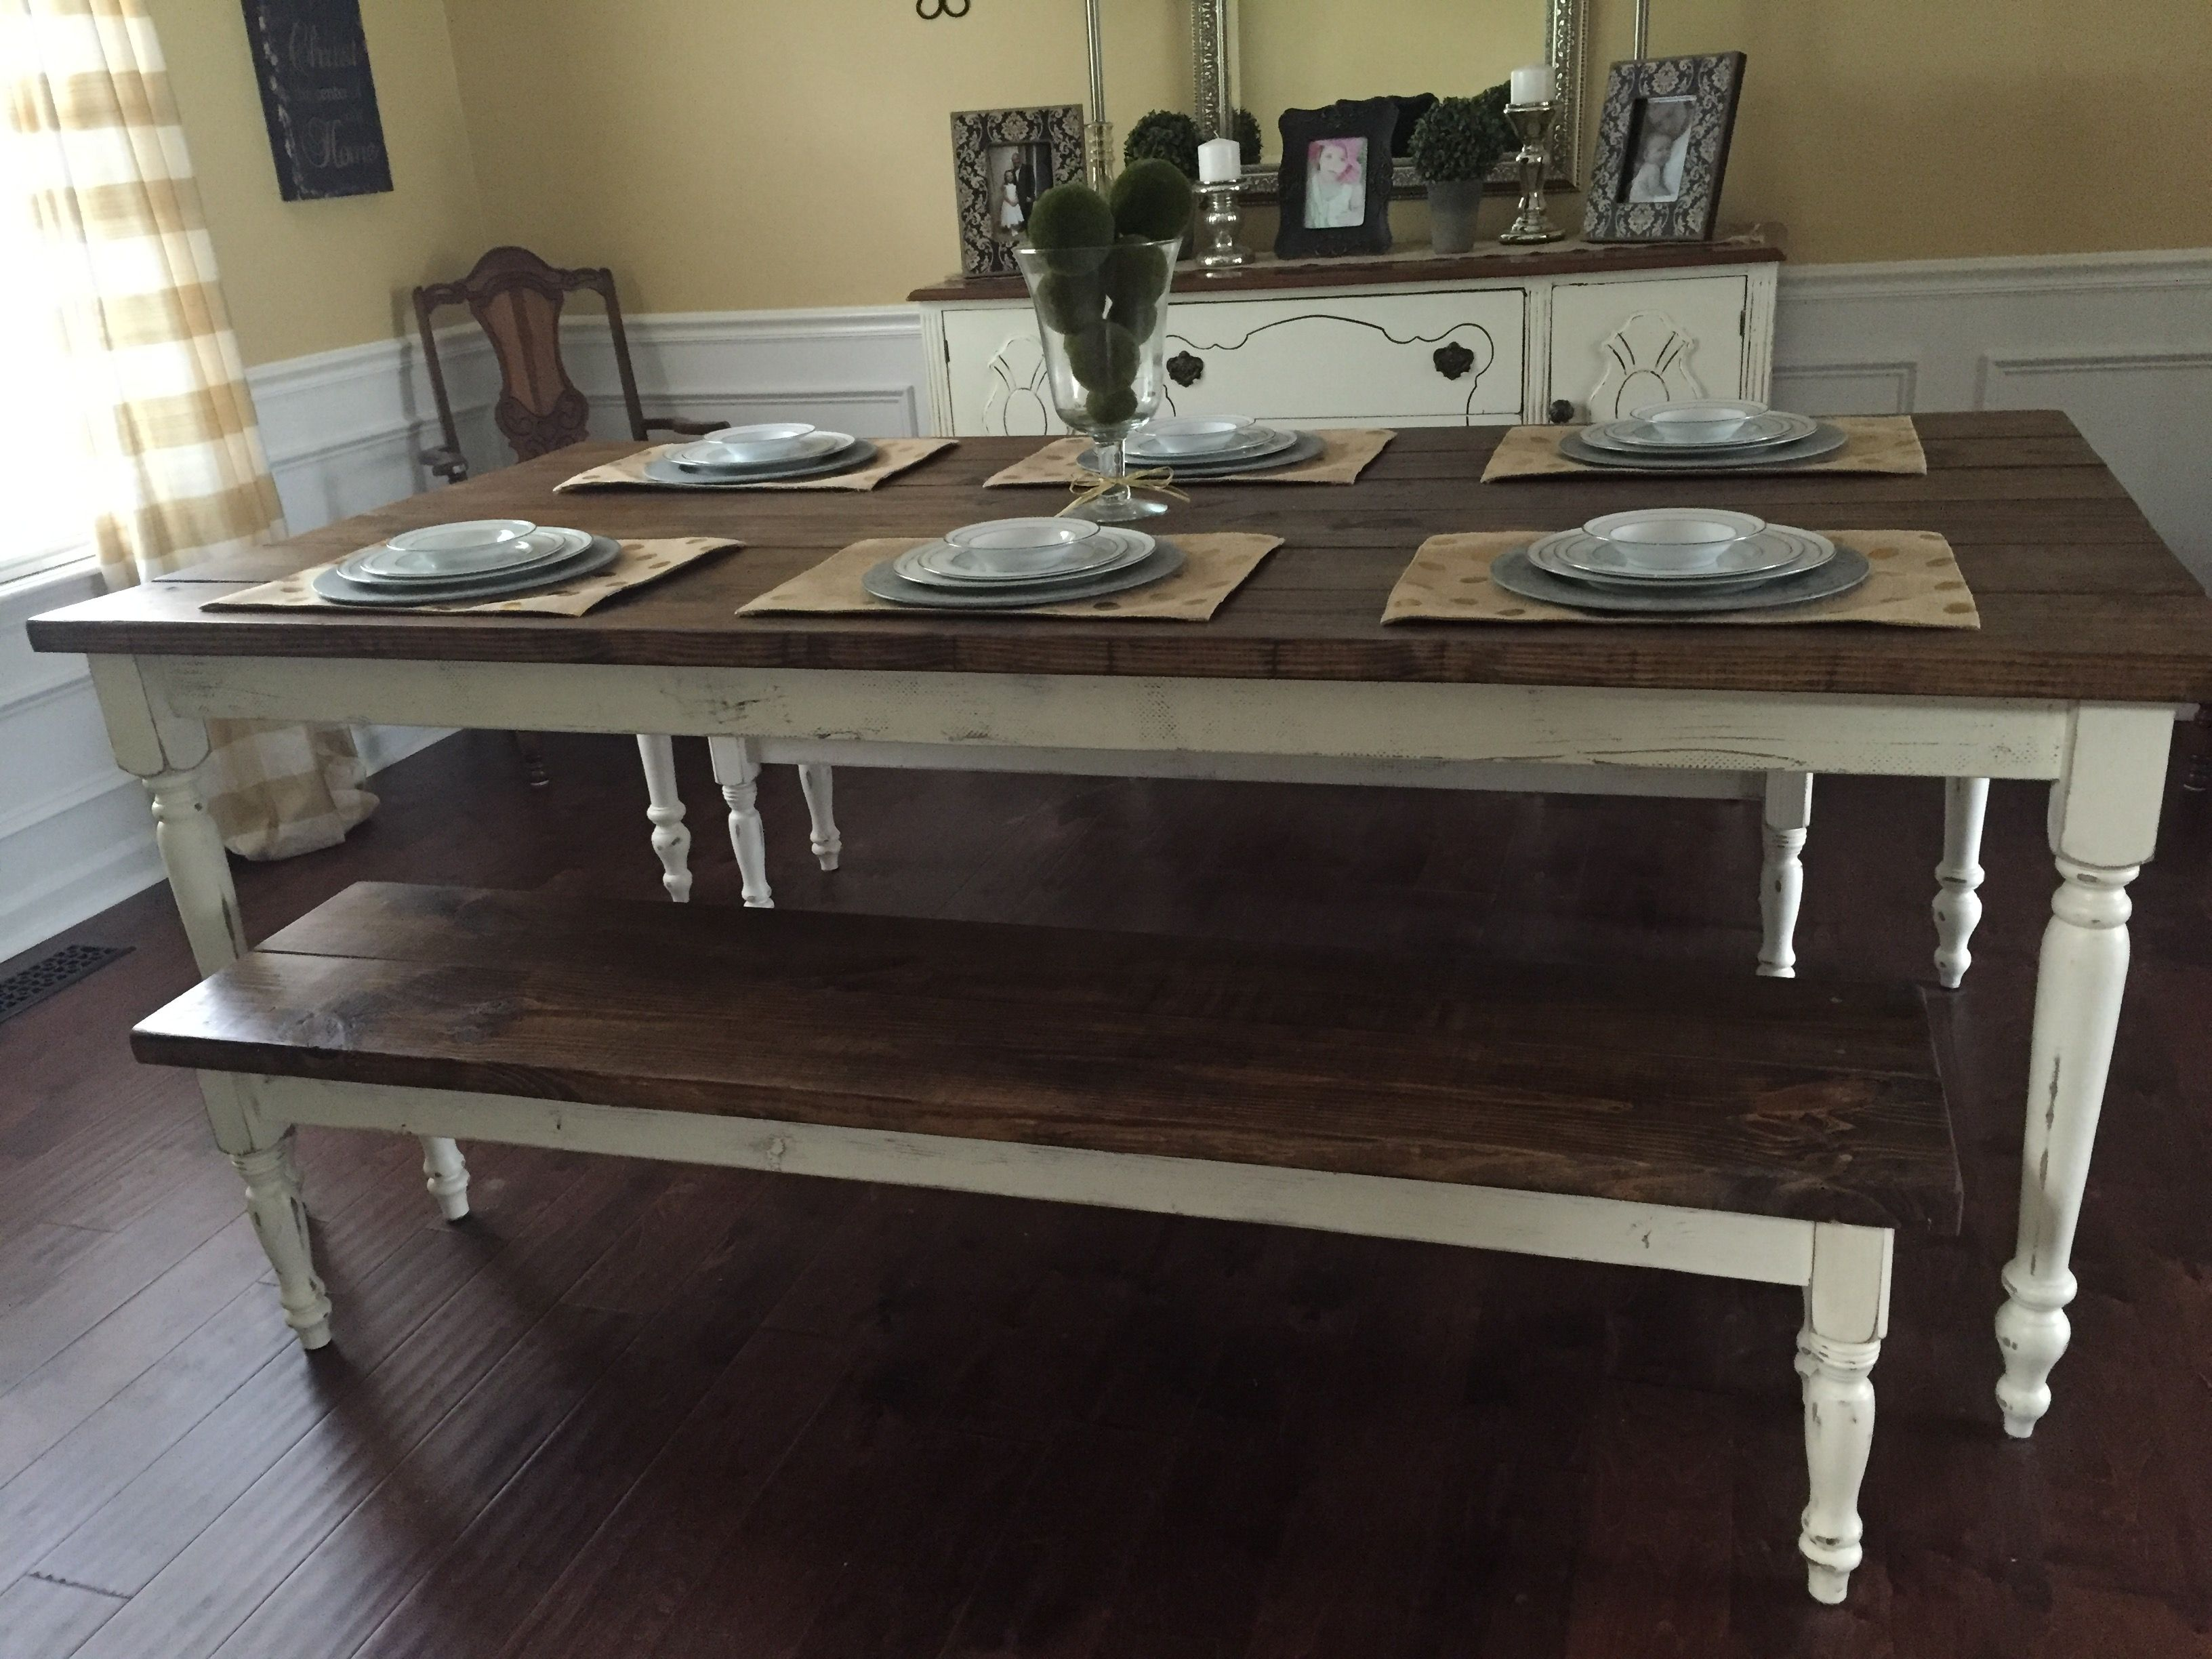 Custom Farmhouse Table Built By Southern Swag Kirklands Galvanized Metal  Chargers, Burlap Placemats, Noritake